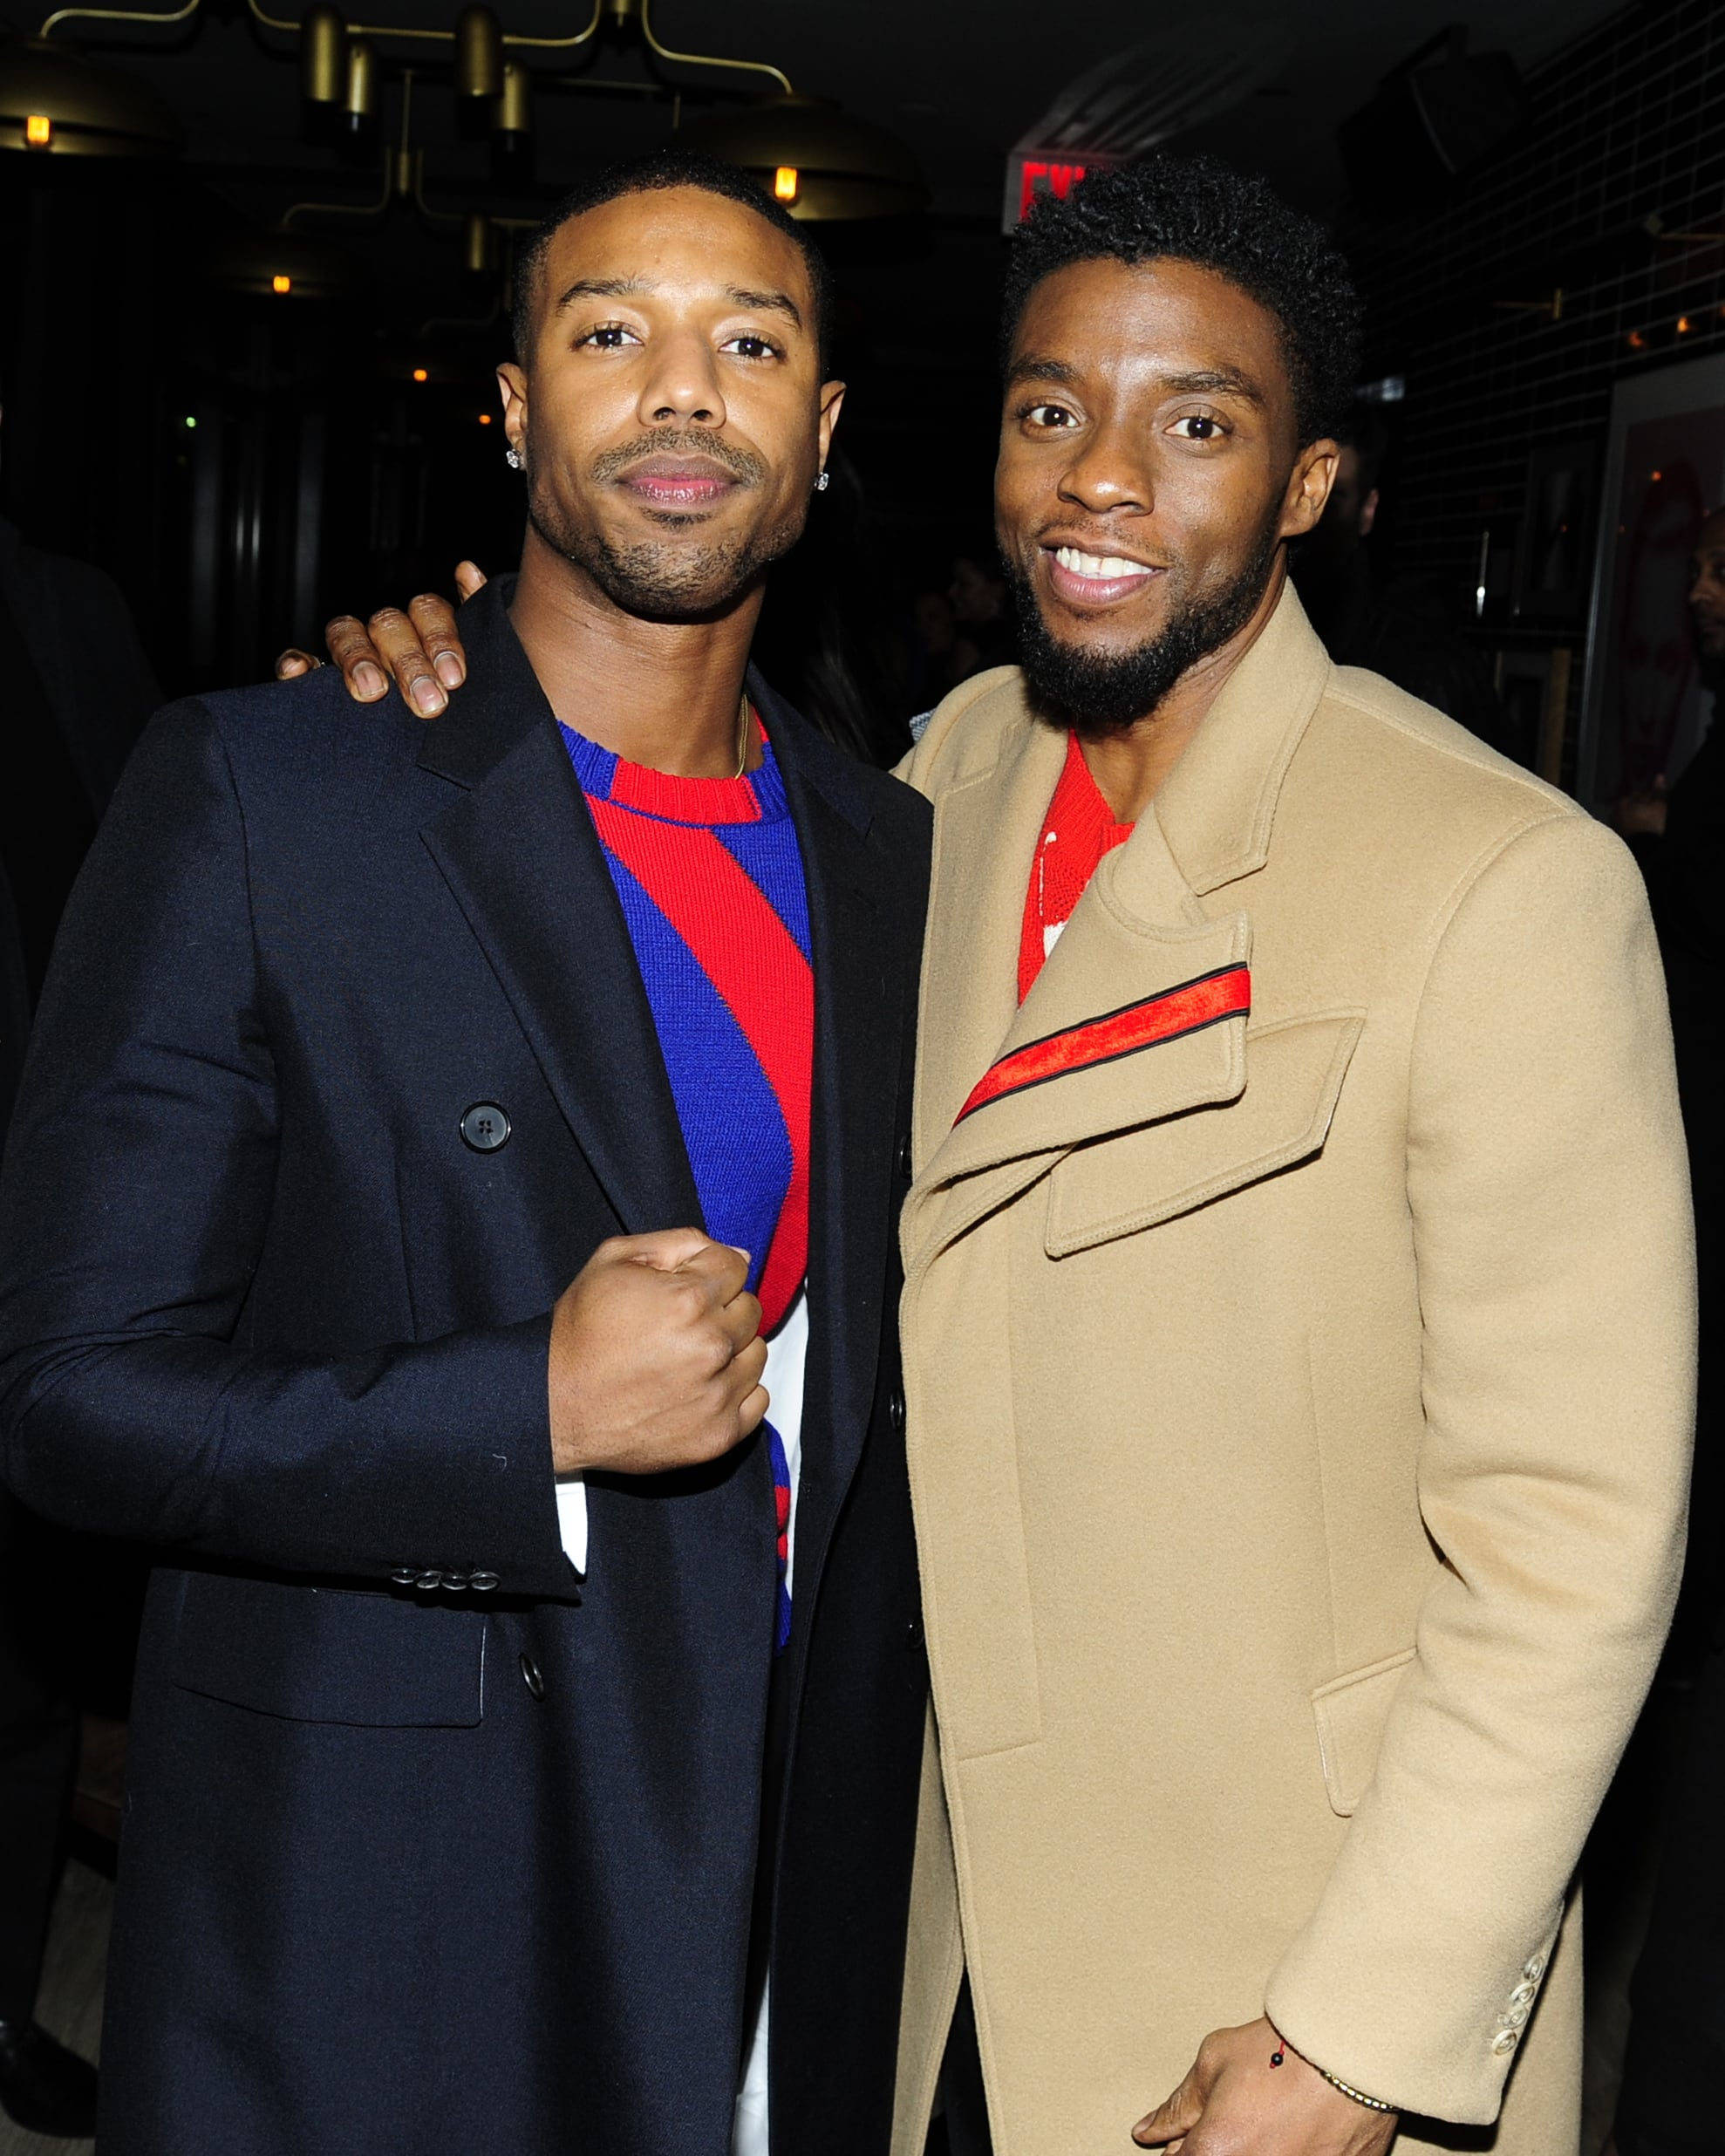 NEW YORK, NY - FEBRUARY 13: Chadwick Boseman and Michael B. Jordan attend The Cinema Society with Ravage Wines & Synchrony host the after party for Marvel Studios'